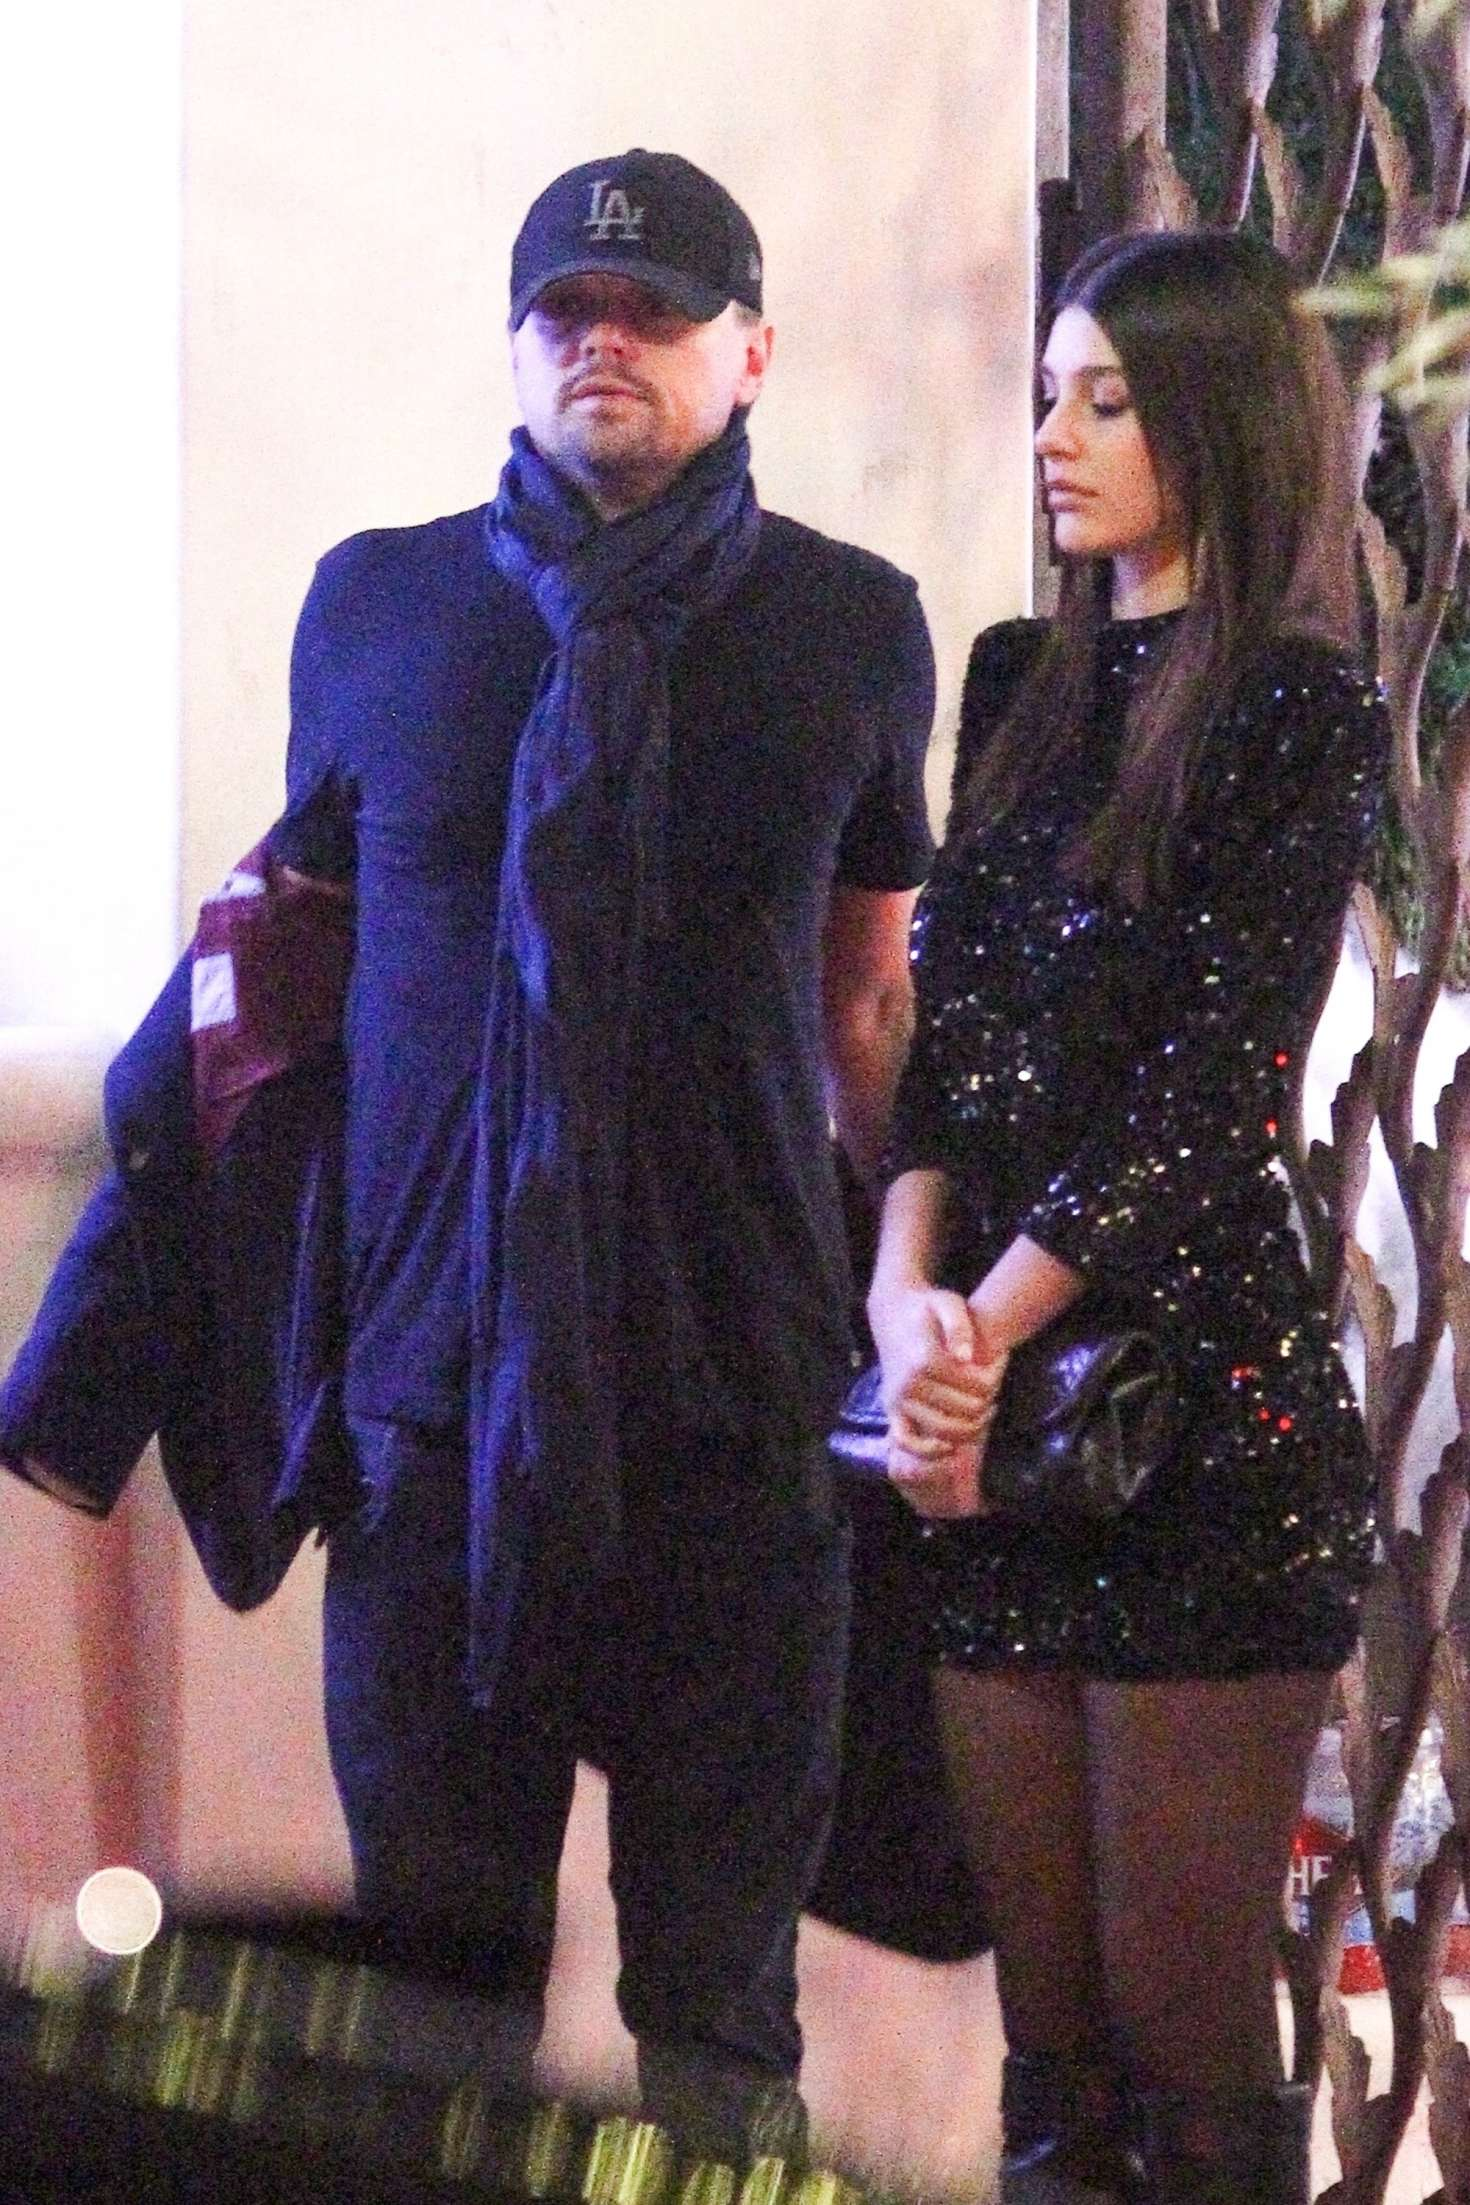 Camila Morrone and Leonardo Dicaprio - Night Out in Beverly Hills